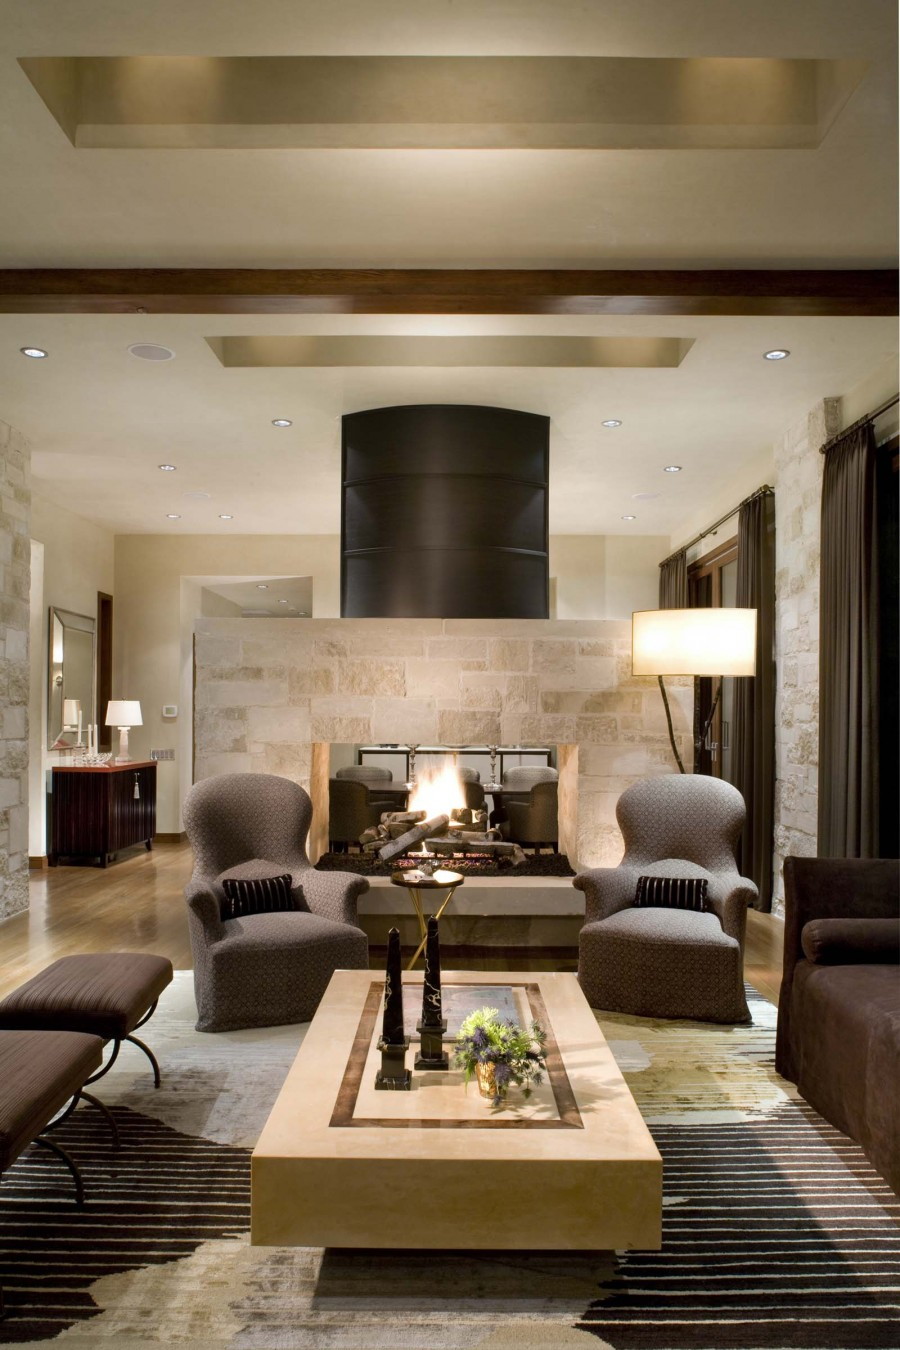 16 fabulous earth tones living room designs decoholic - Cozy living room ideas ...